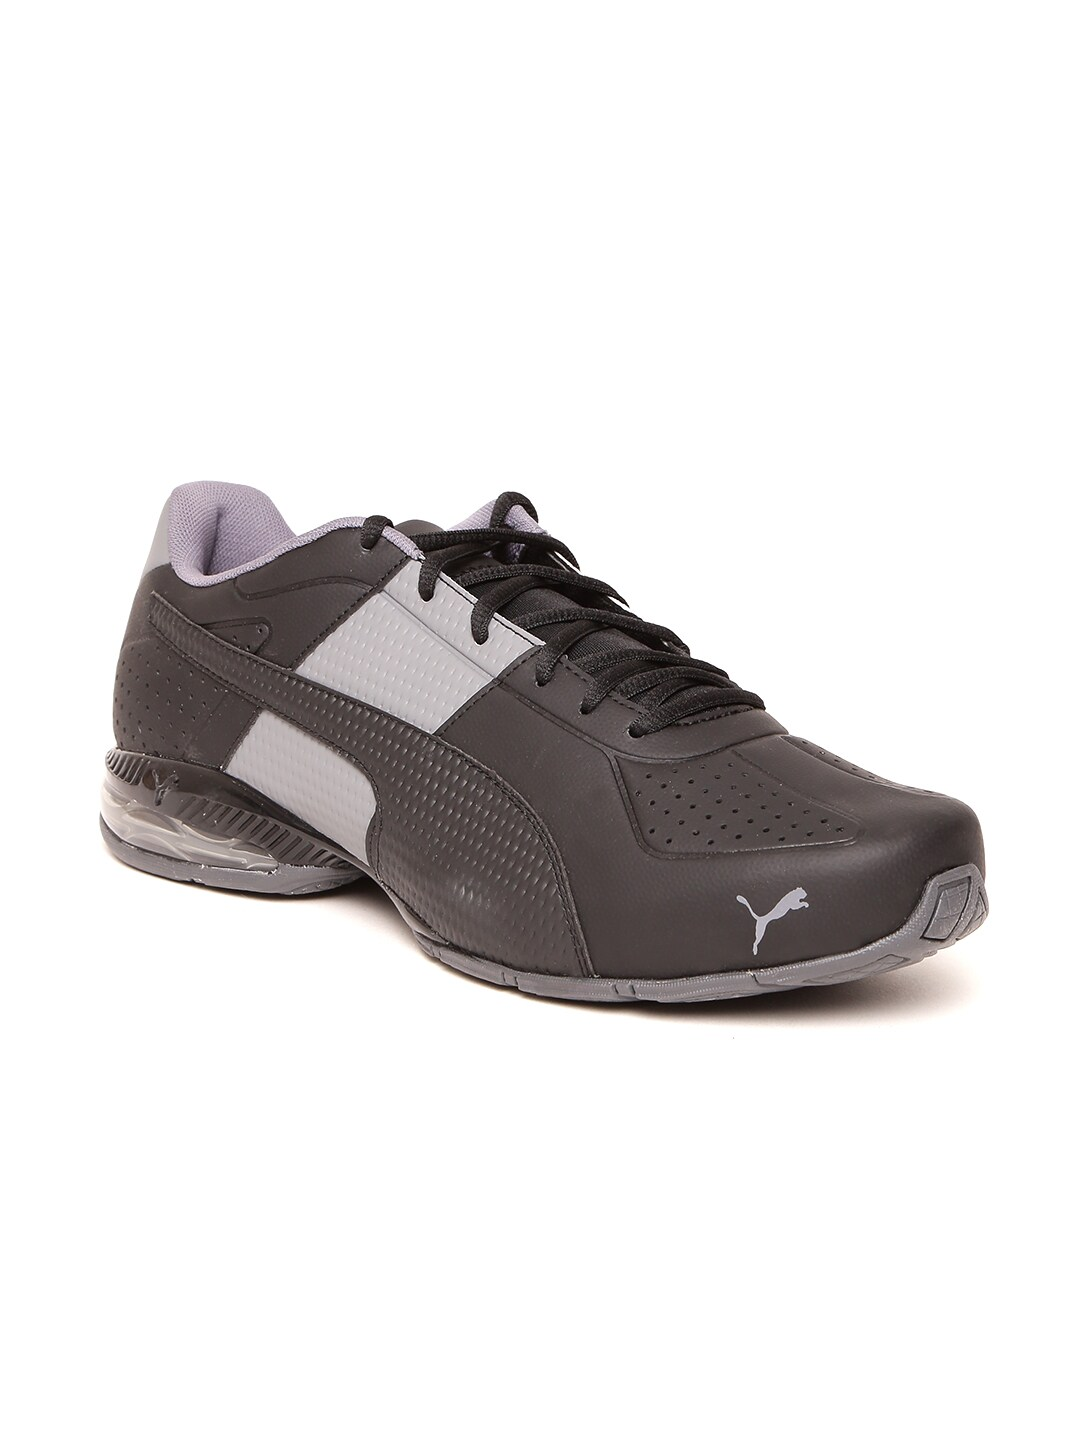 3e49445a1e54 Puma® - Buy Orignal Puma products in India